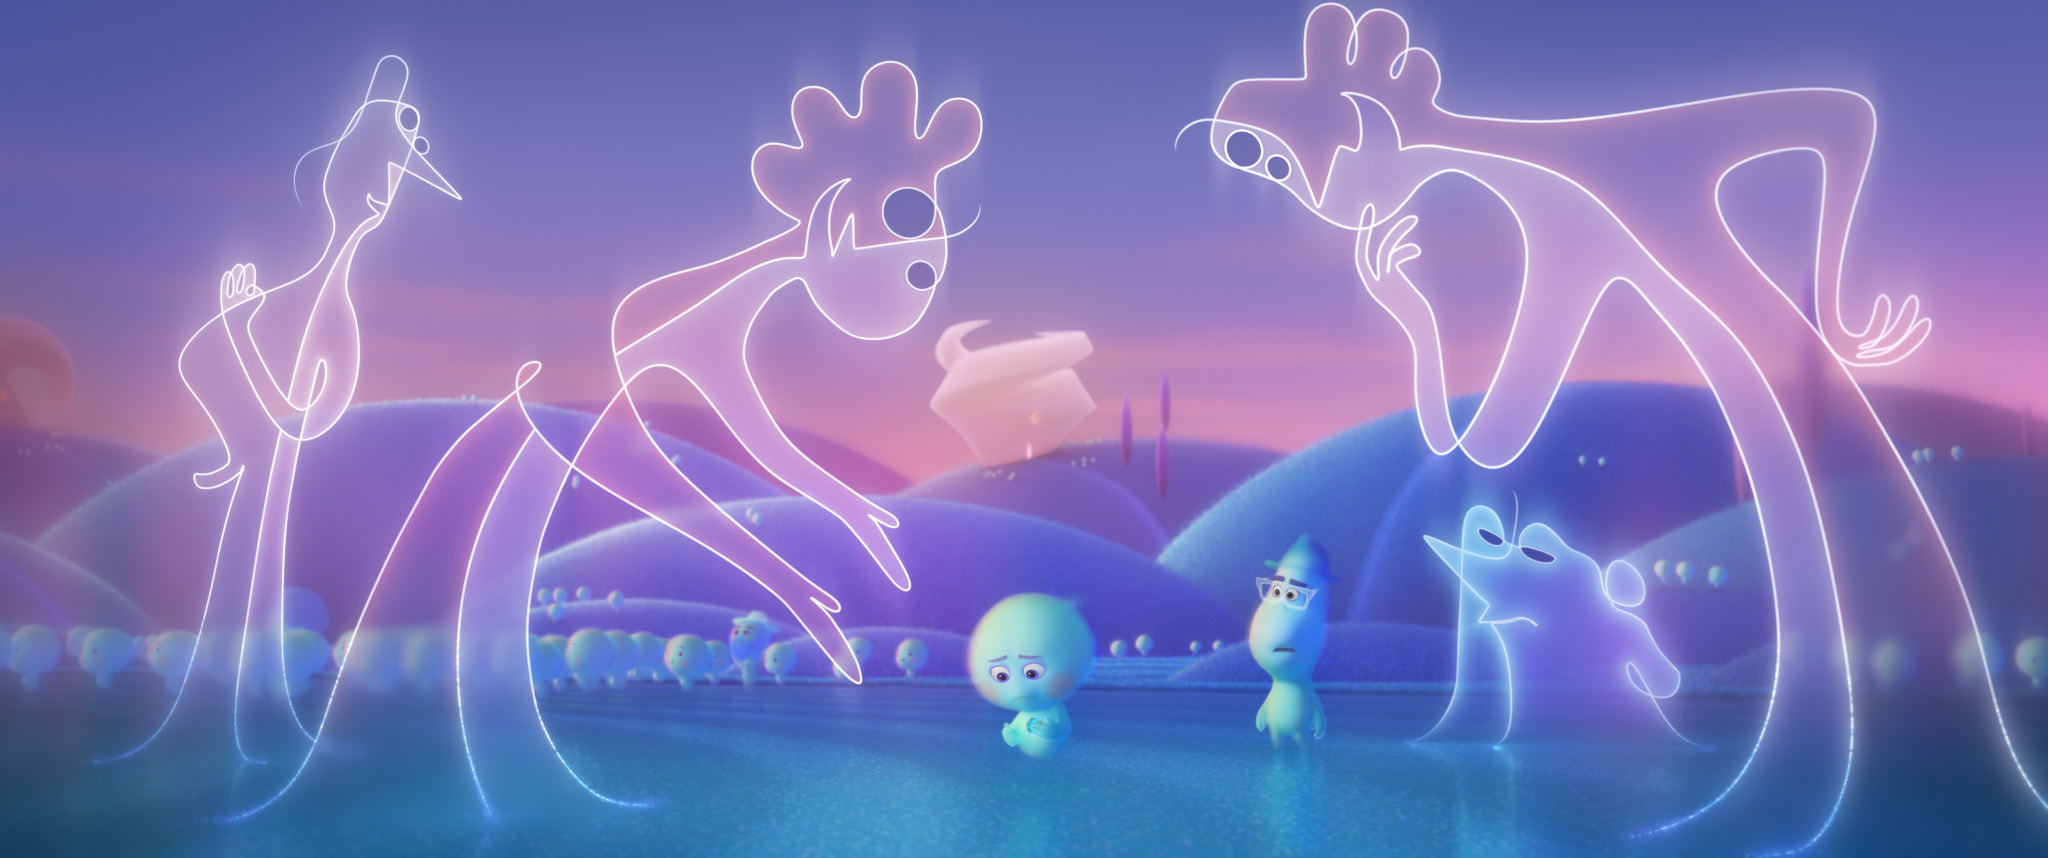 Small blue characters walk around beneath giant line-drawn characters.